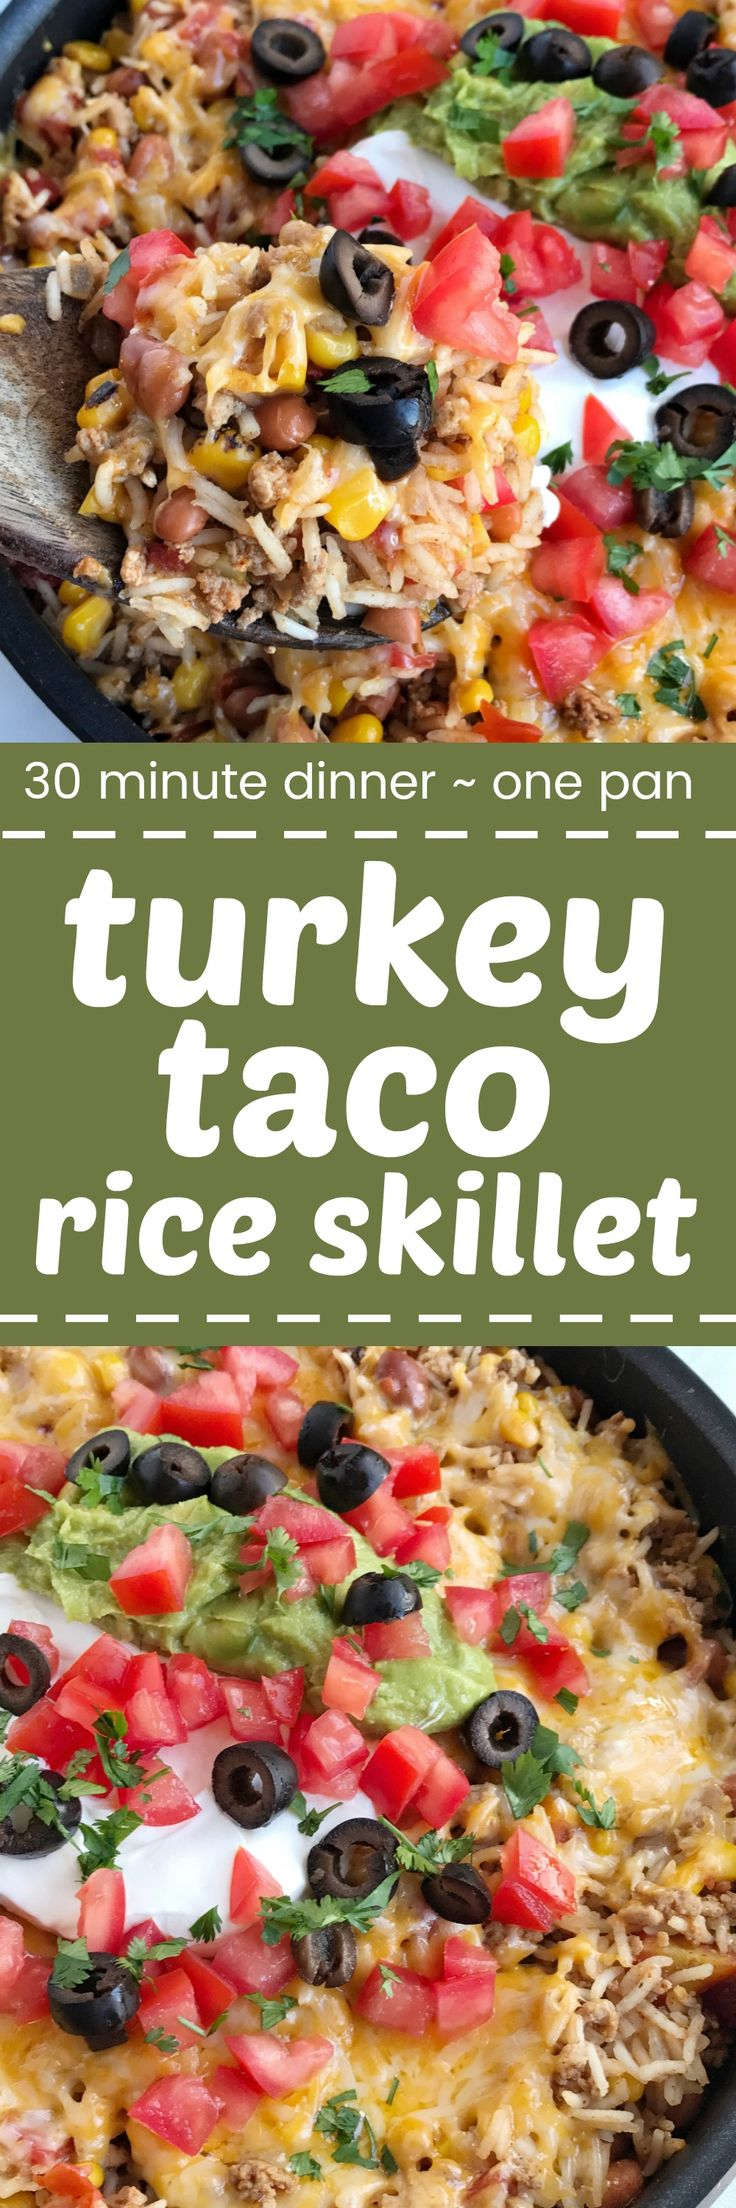 All your favorite of a taco in a one pan, skillet dinner! Turkey taco rice skillet is loaded with ground turkey, beans, corn, and tomatoes. Add in some rice and let it all simmer in a beef broth blend. Top with melted cheese and all your favorite taco toppings for the best and easiest dinner.